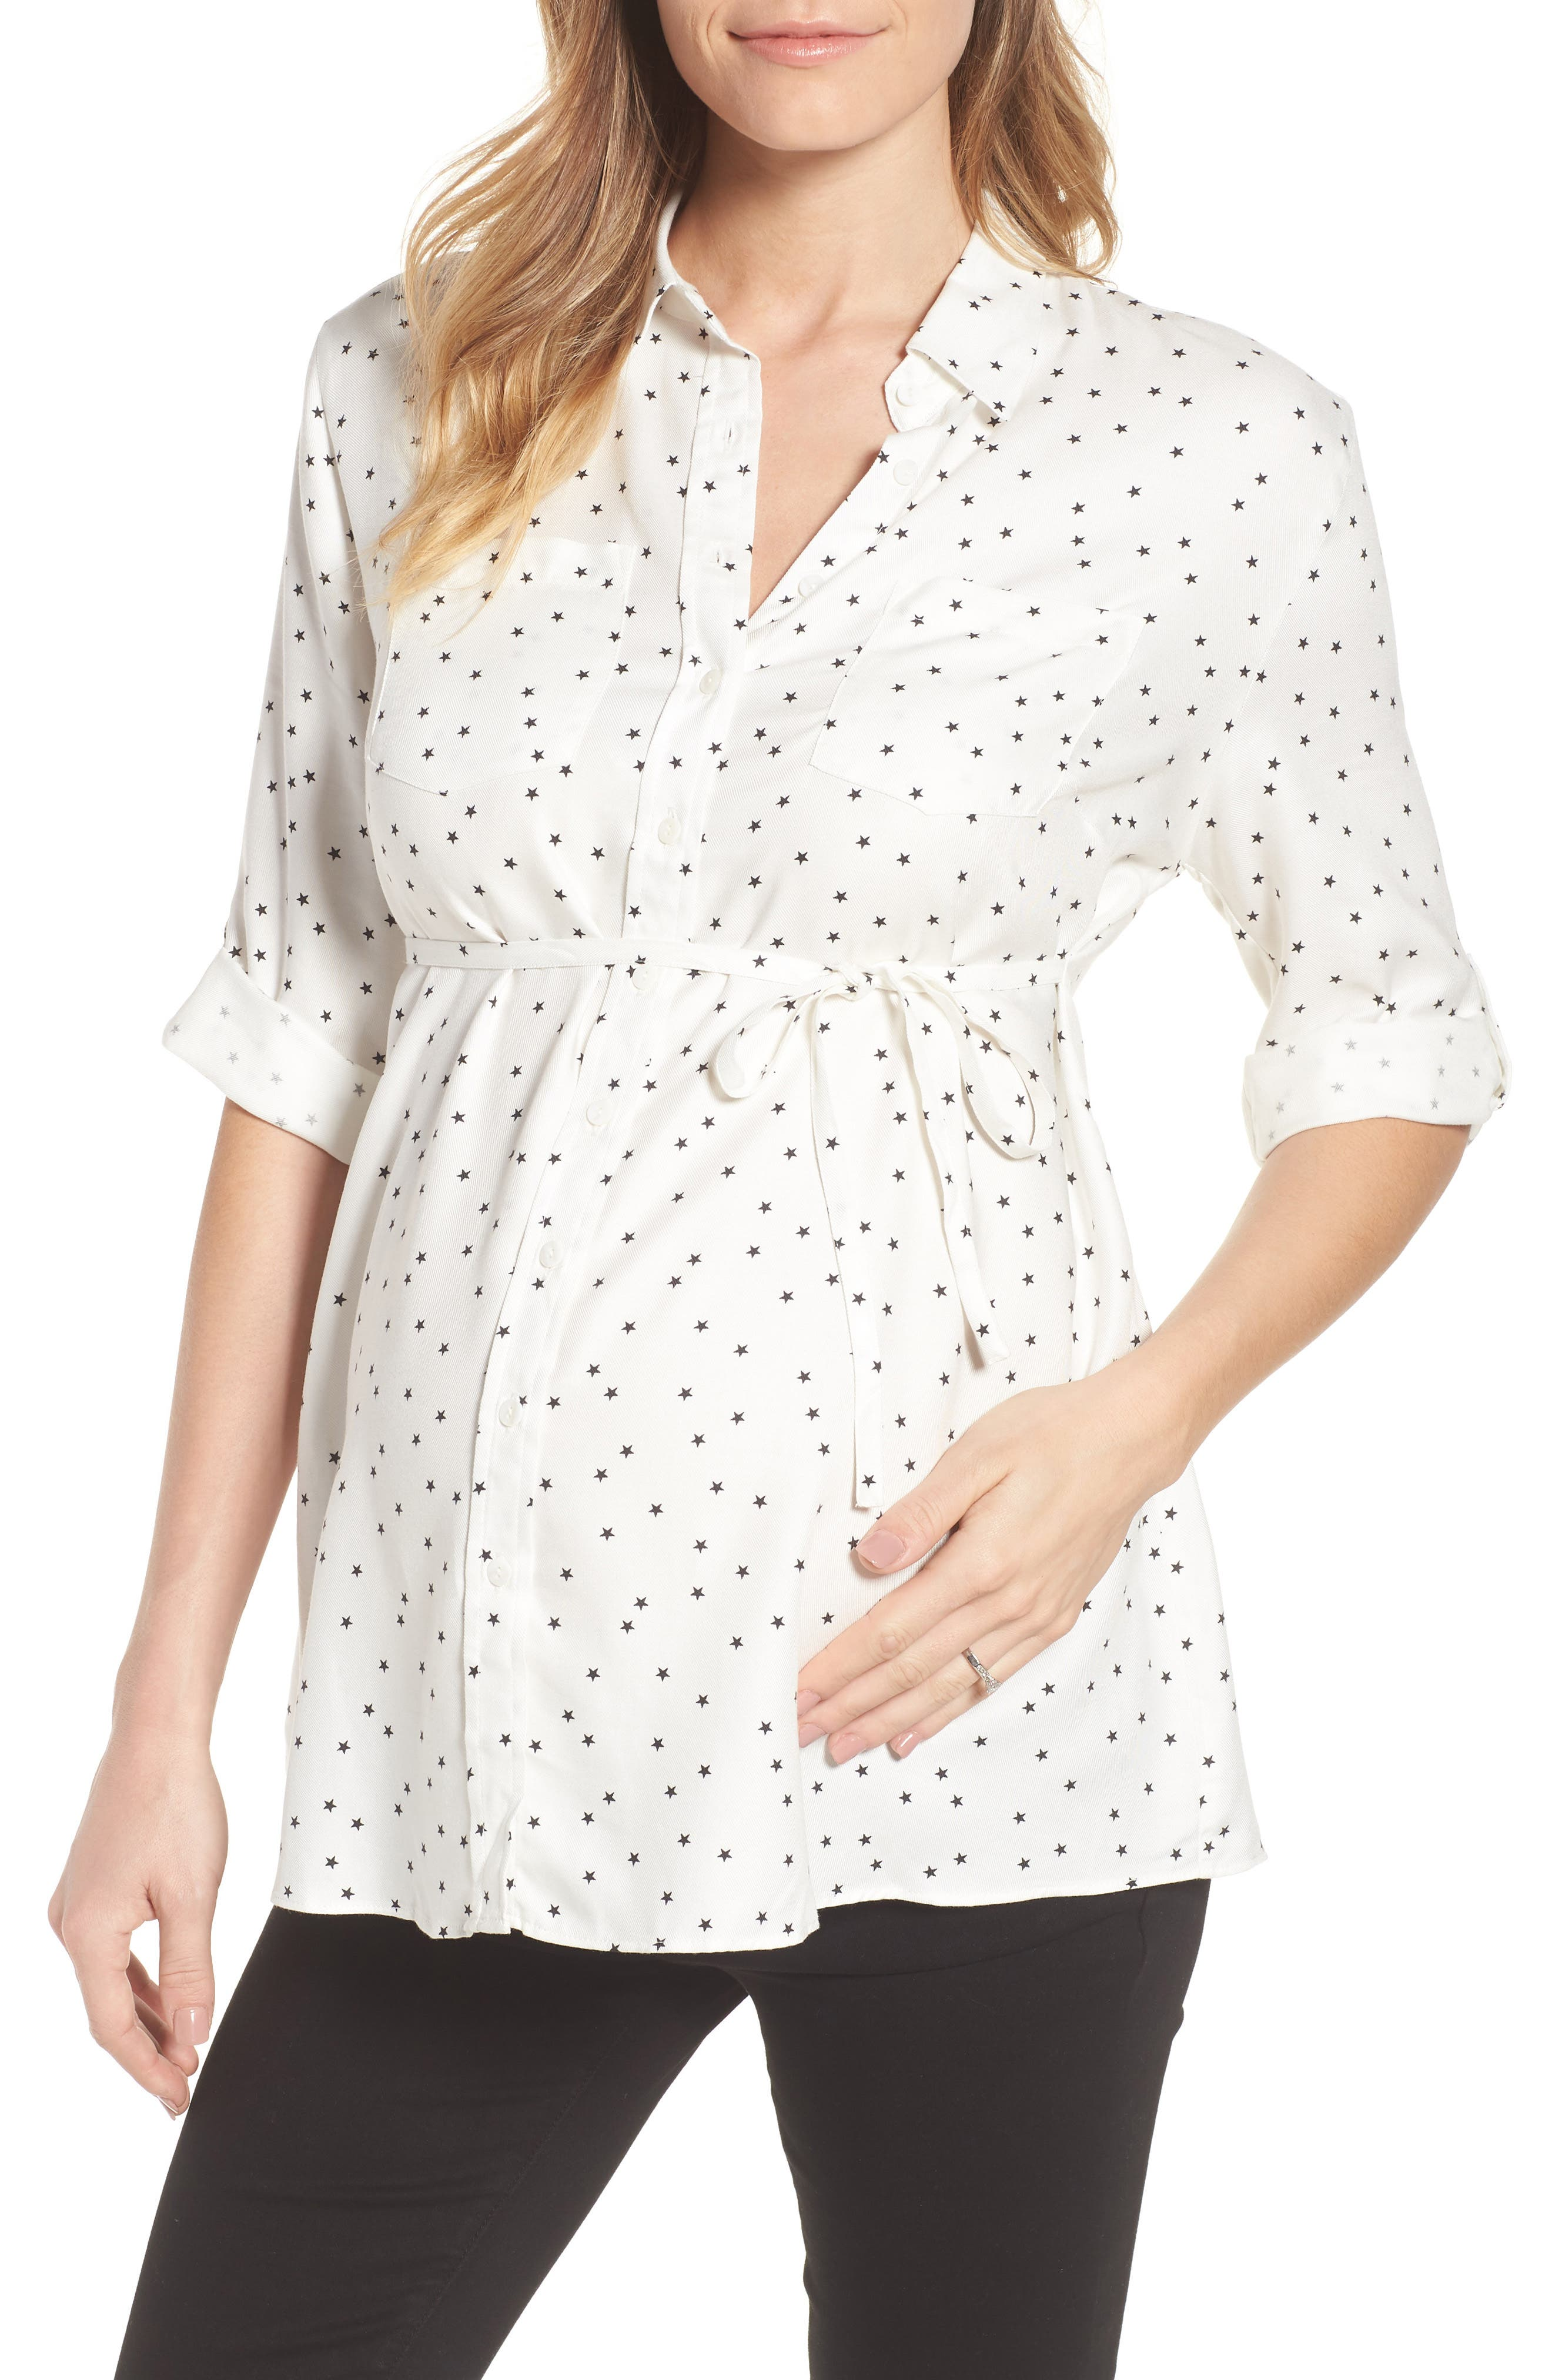 Selina Maternity Shirt,                         Main,                         color, OFF WHITE STAR PRINT